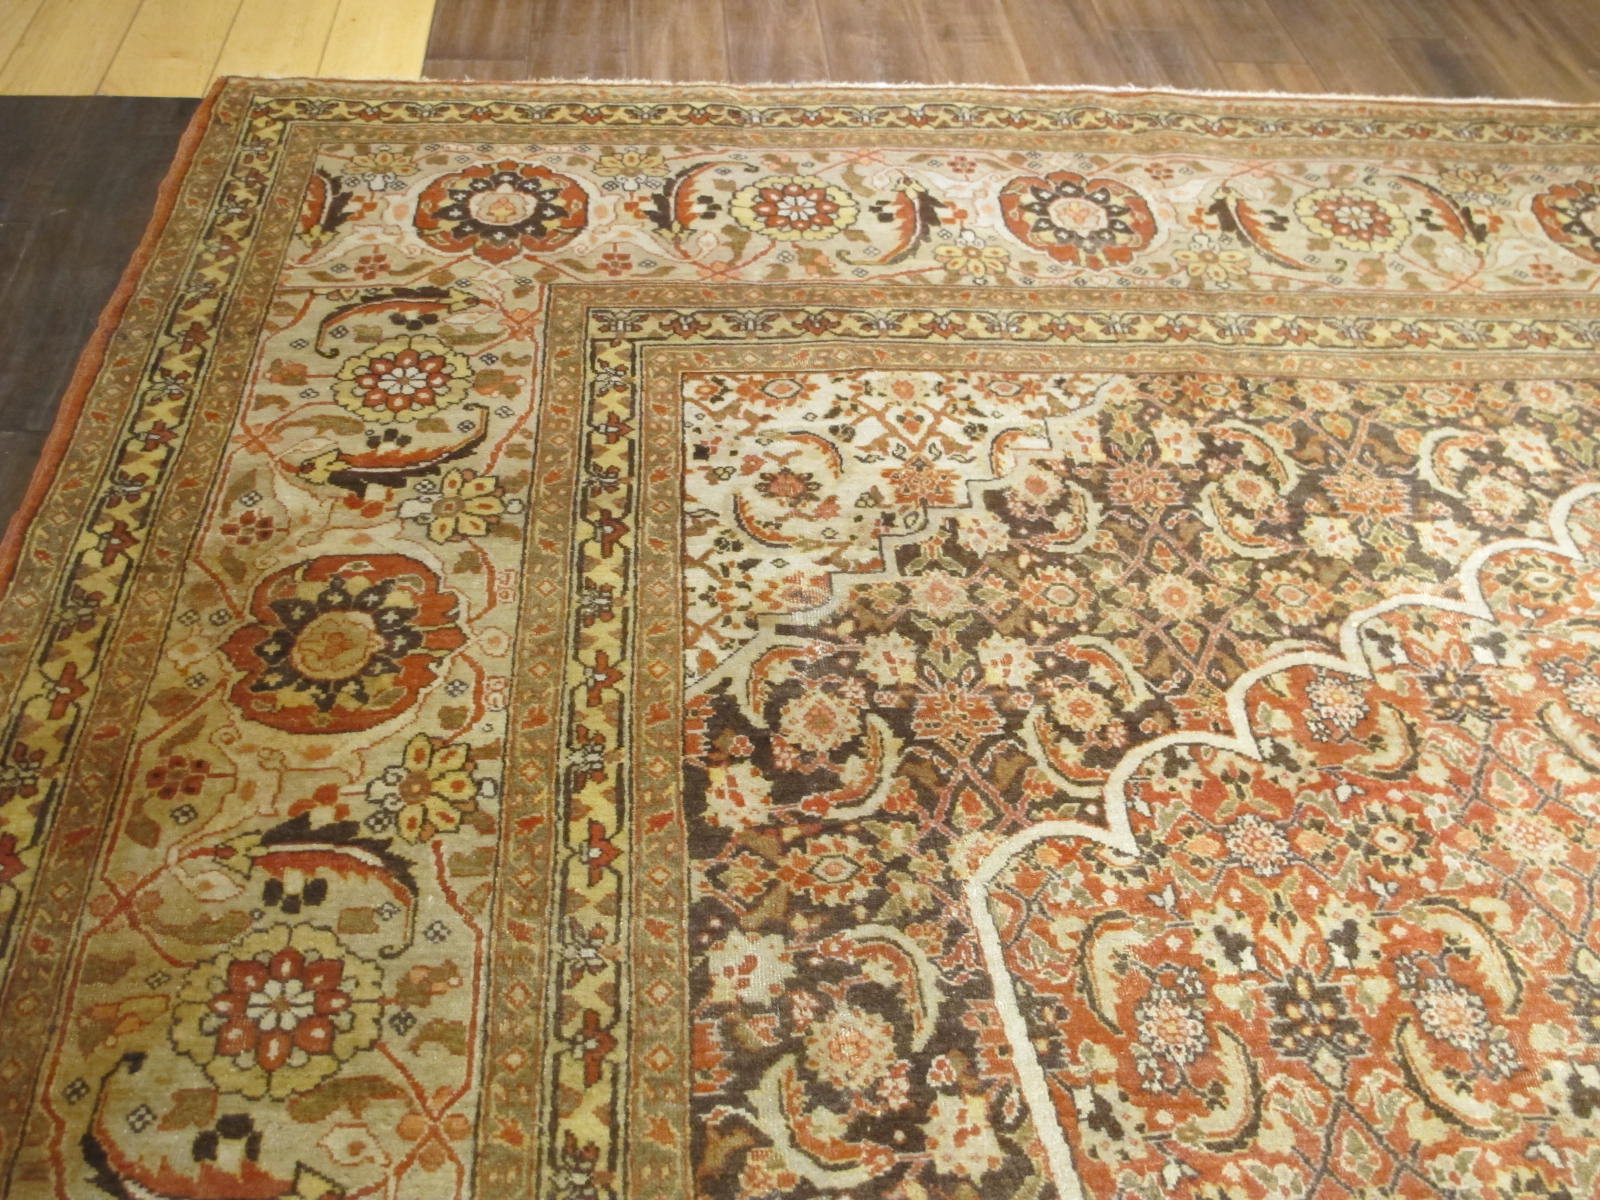 10 antique persian tabriz rug 11x17,4 (2)